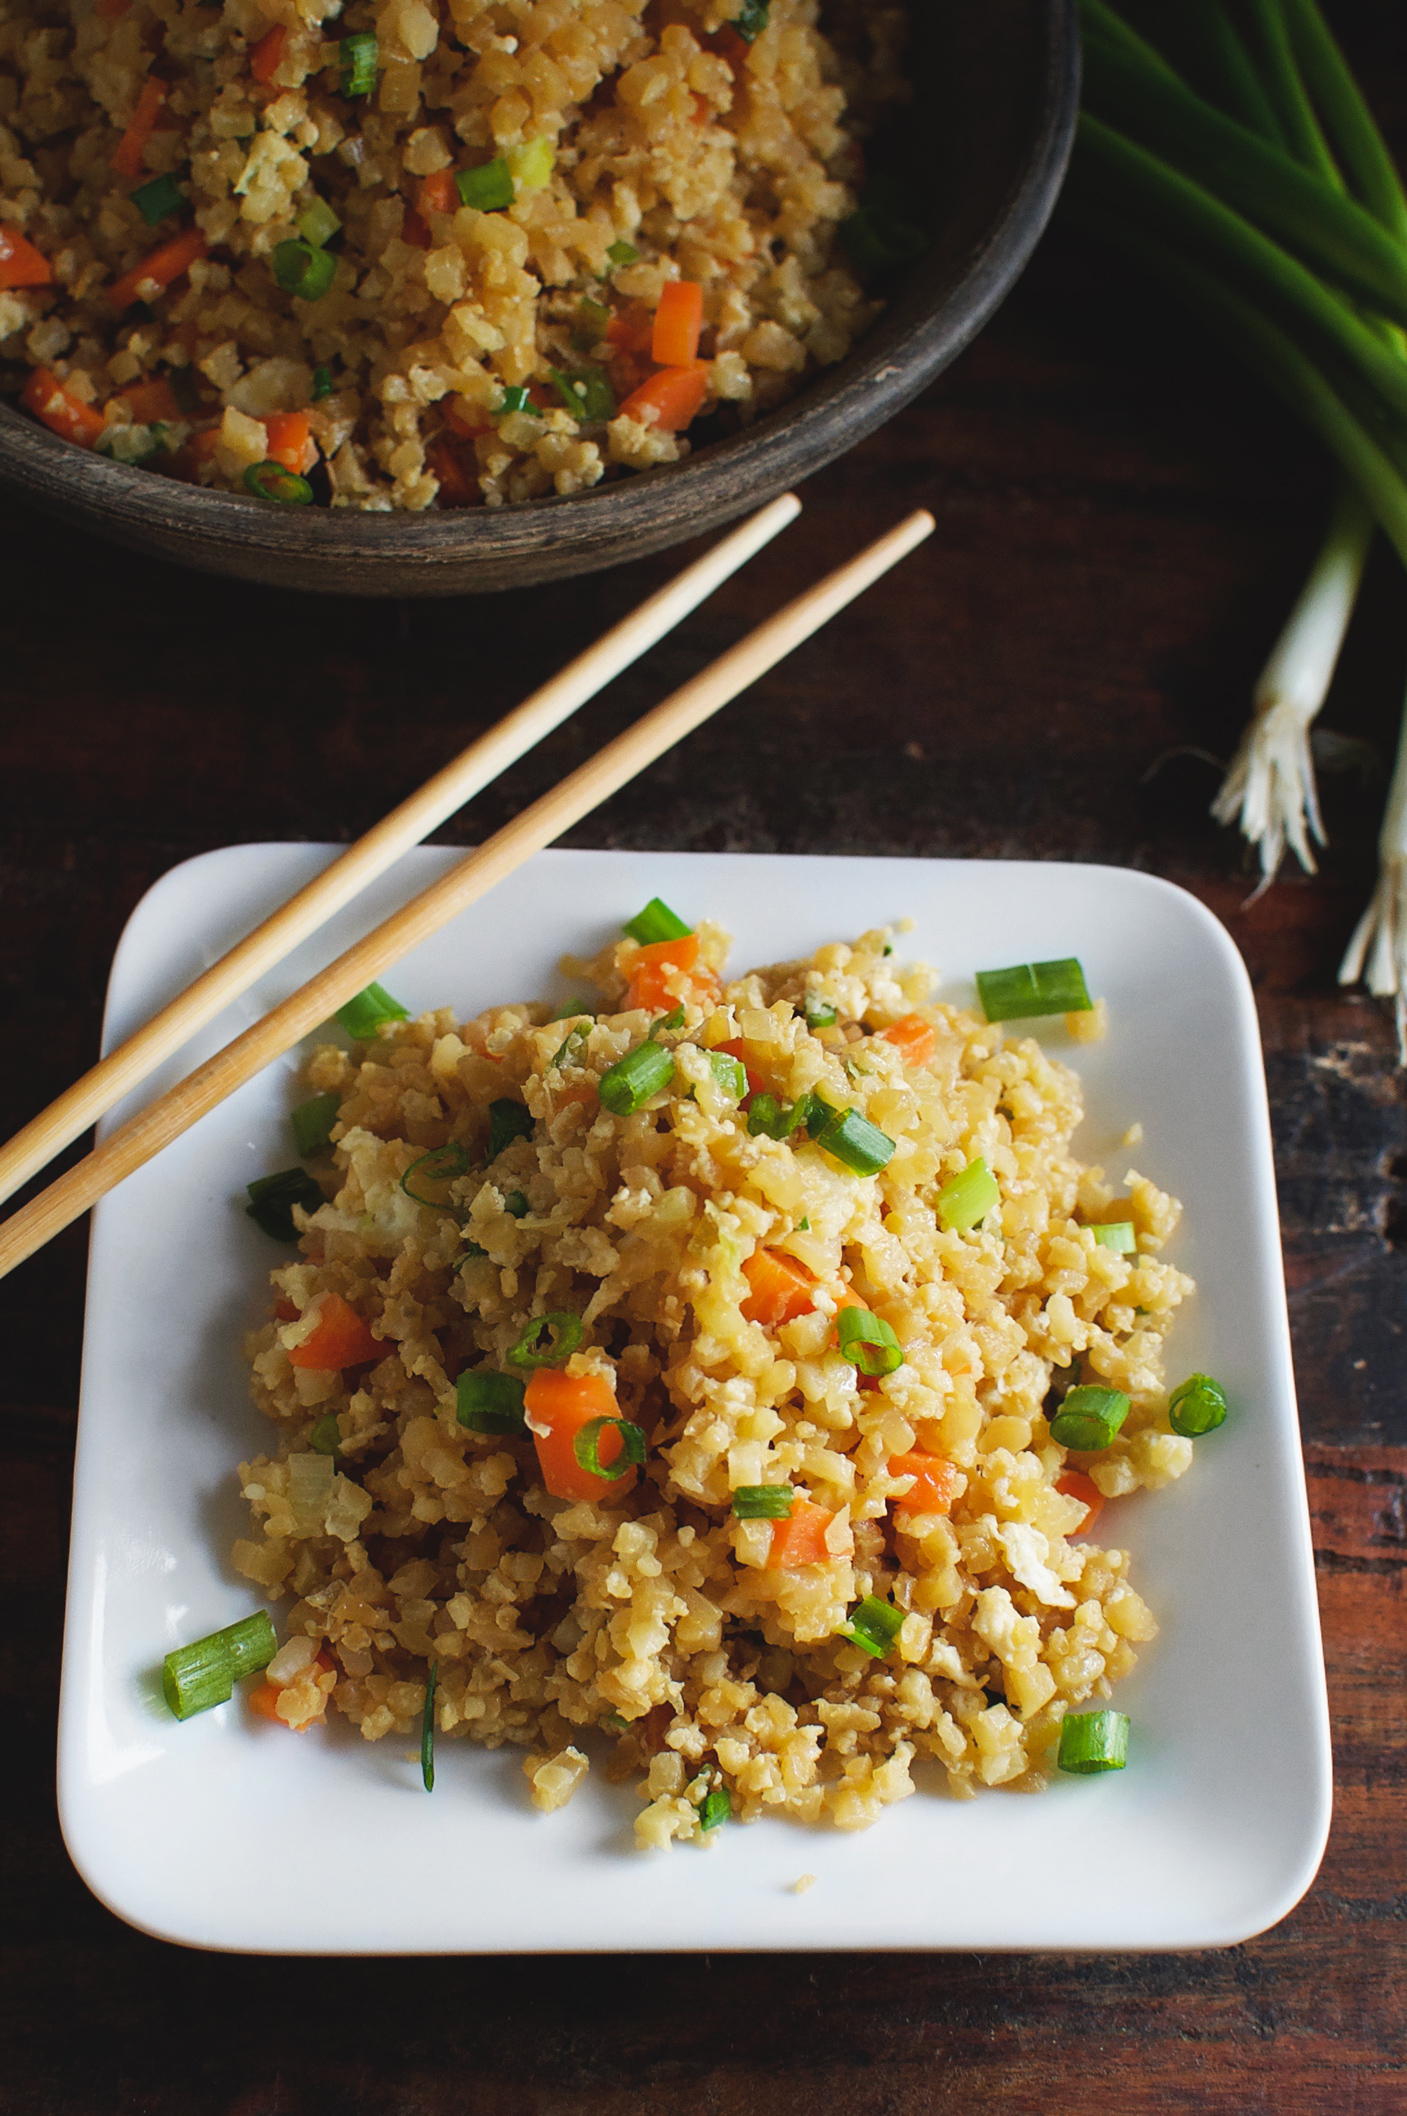 Easy Low-Carb Cauliflower Fried Rice Recipe served on a plate. Overhead shot.